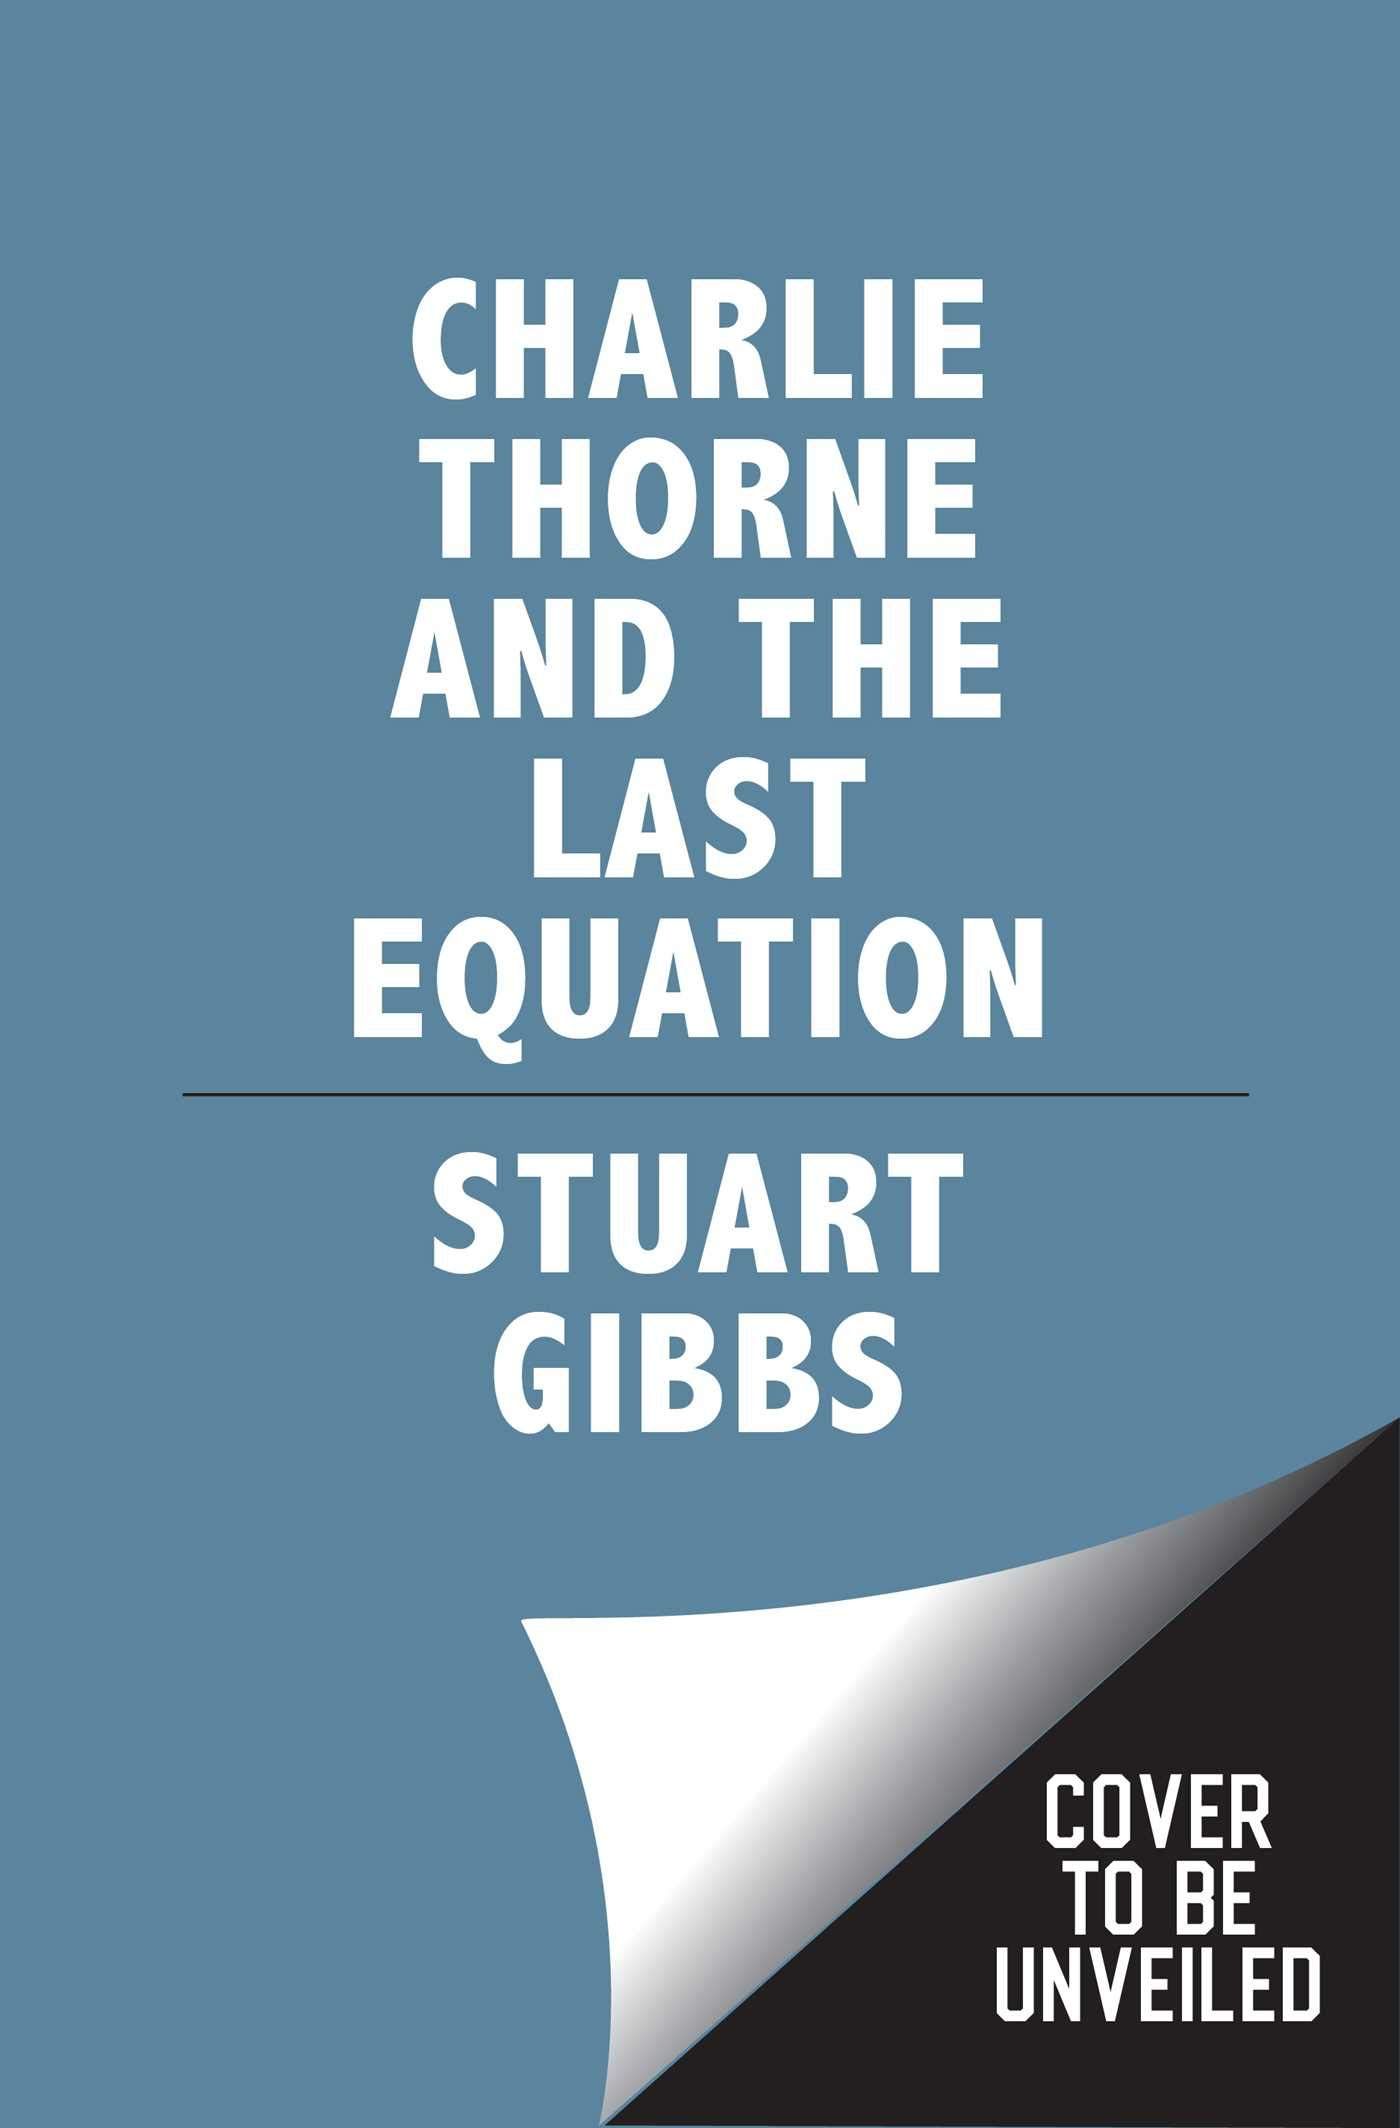 : Charlie Thorne and the Last Equation